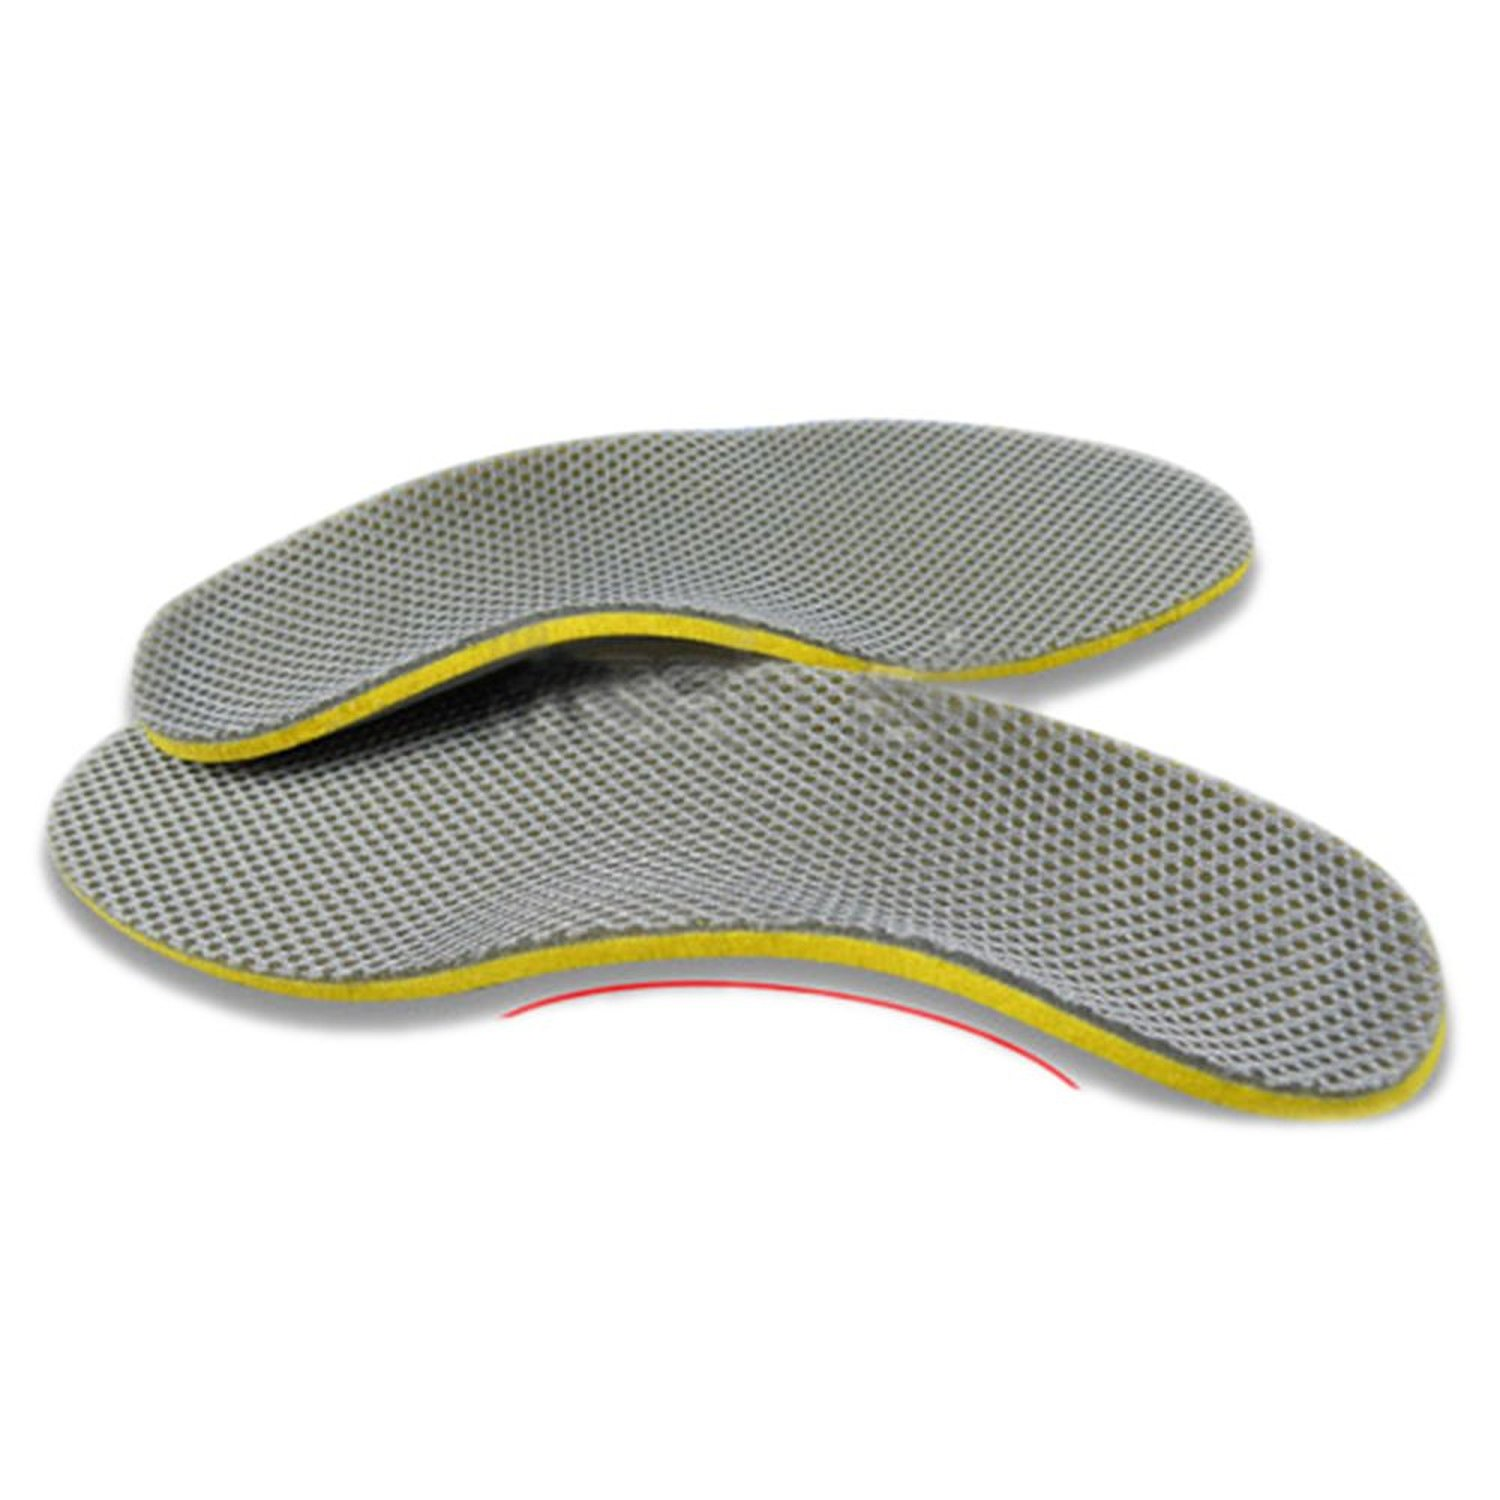 VSEN Hot StyleComfortable Orthotic Shoes Insoles Inserts High Arch Support Pad (S) yellow+Gray